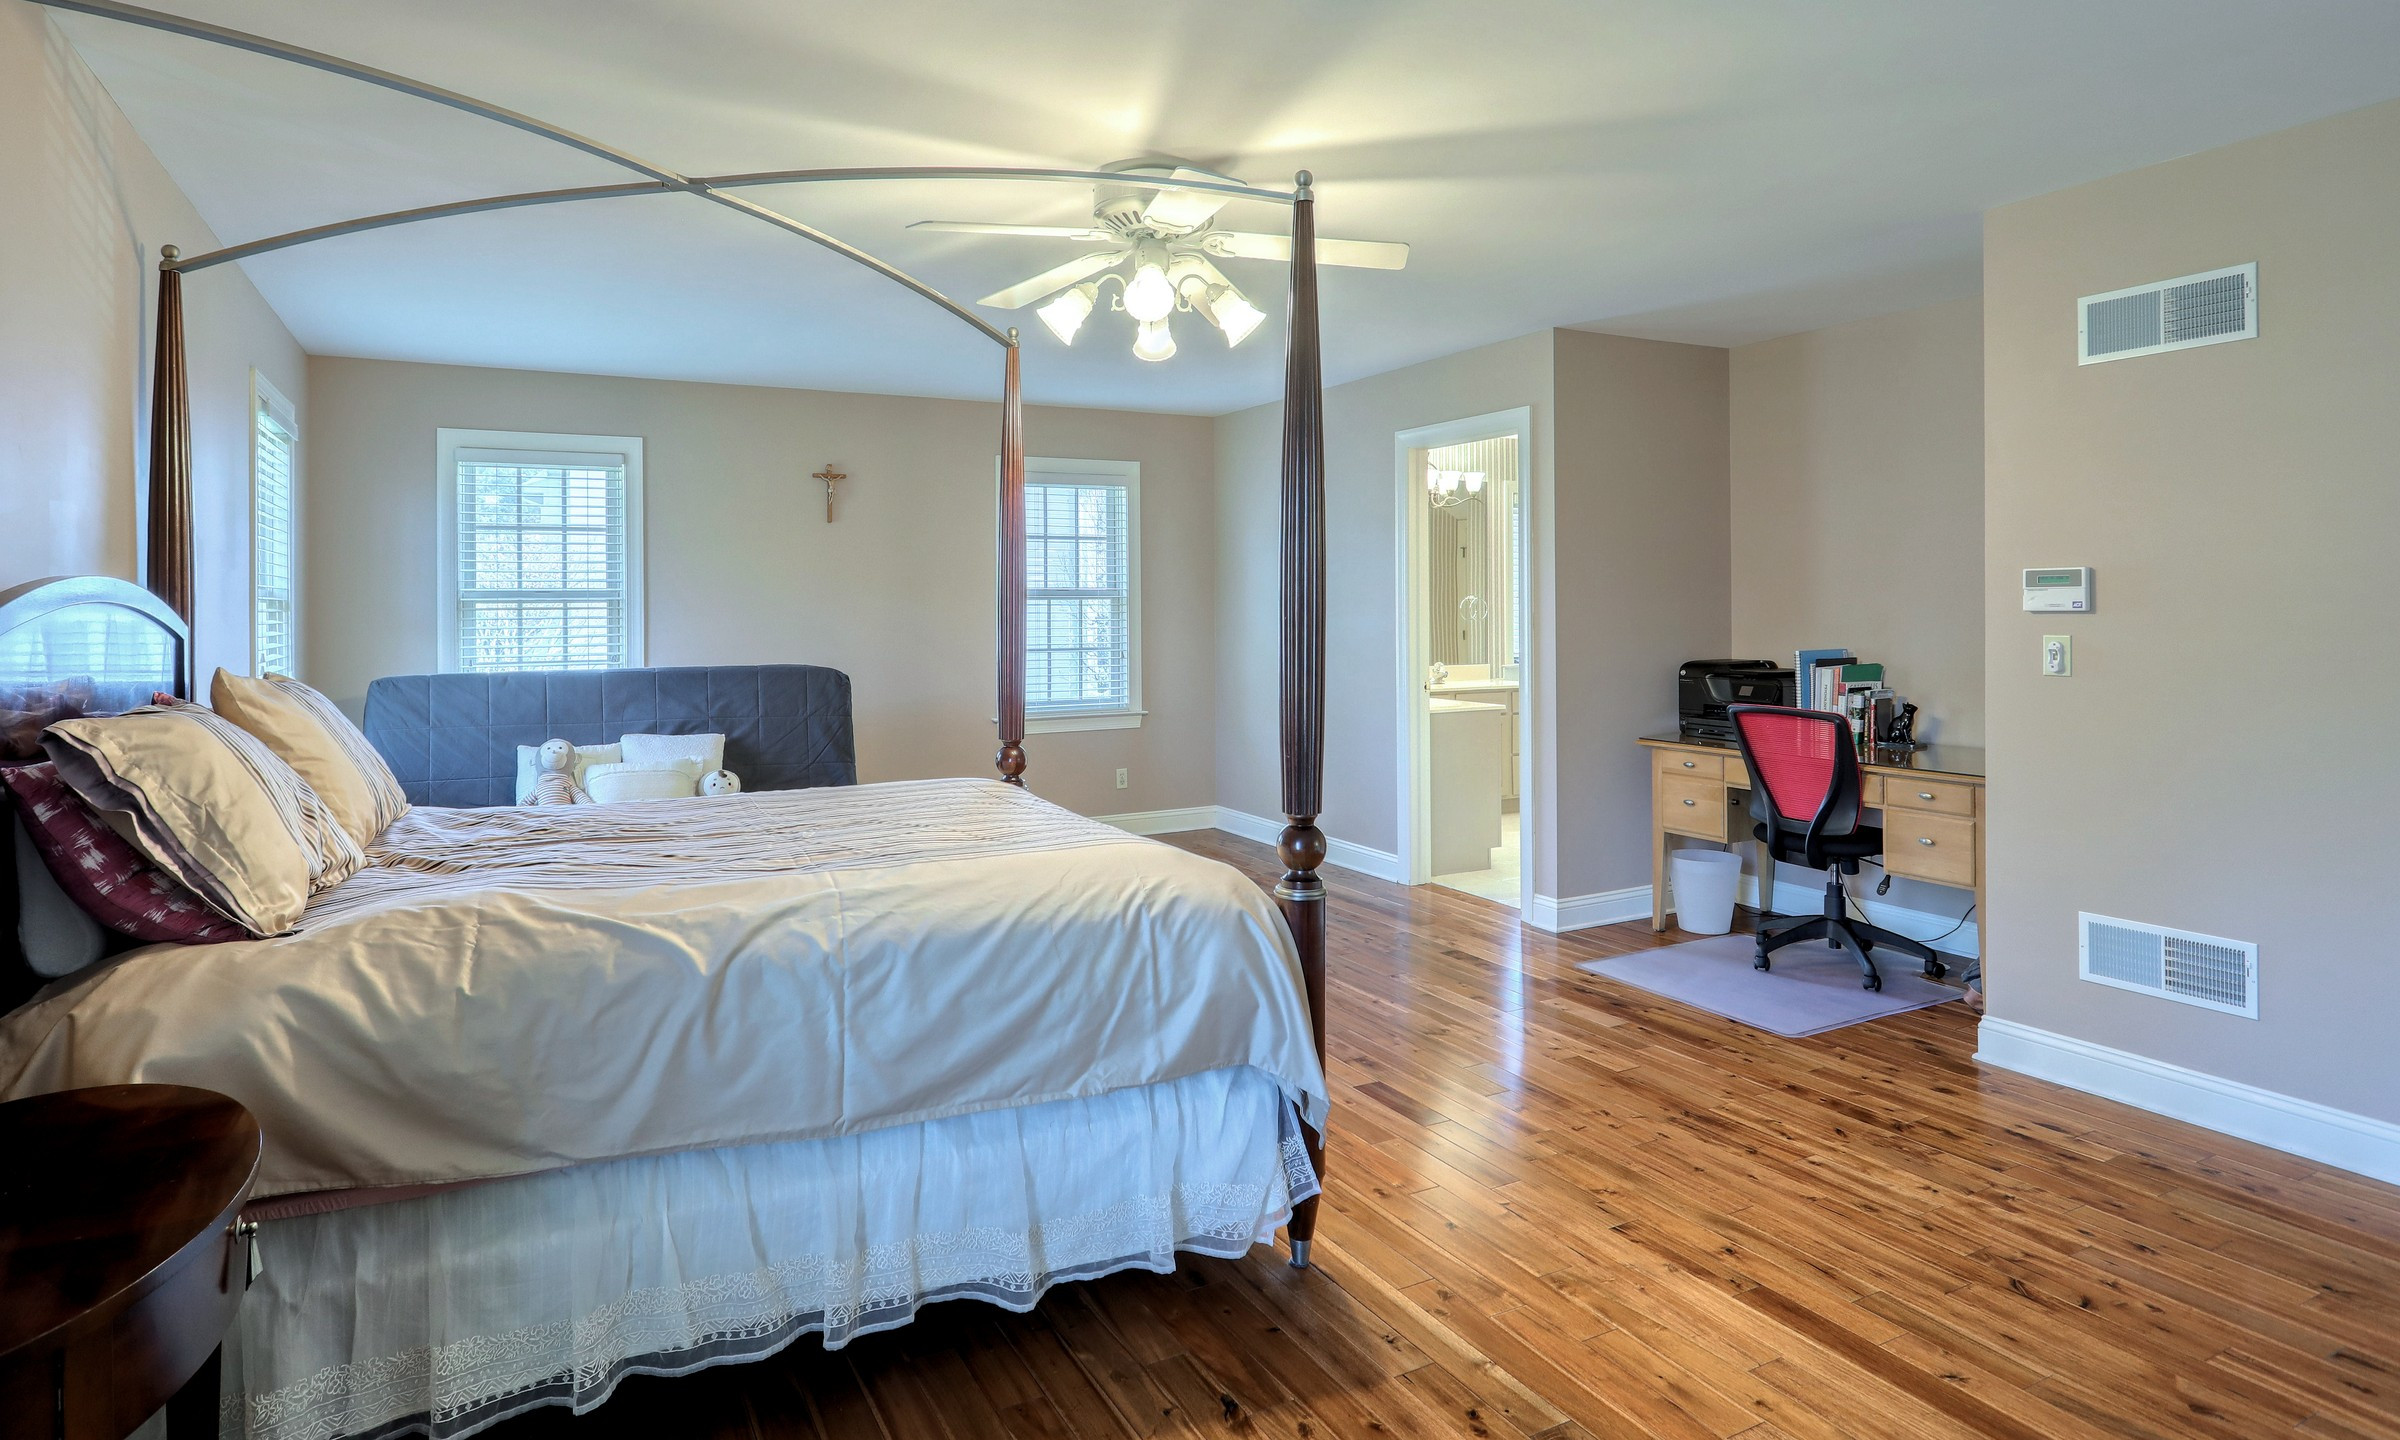 Real Estate Photographer York PA